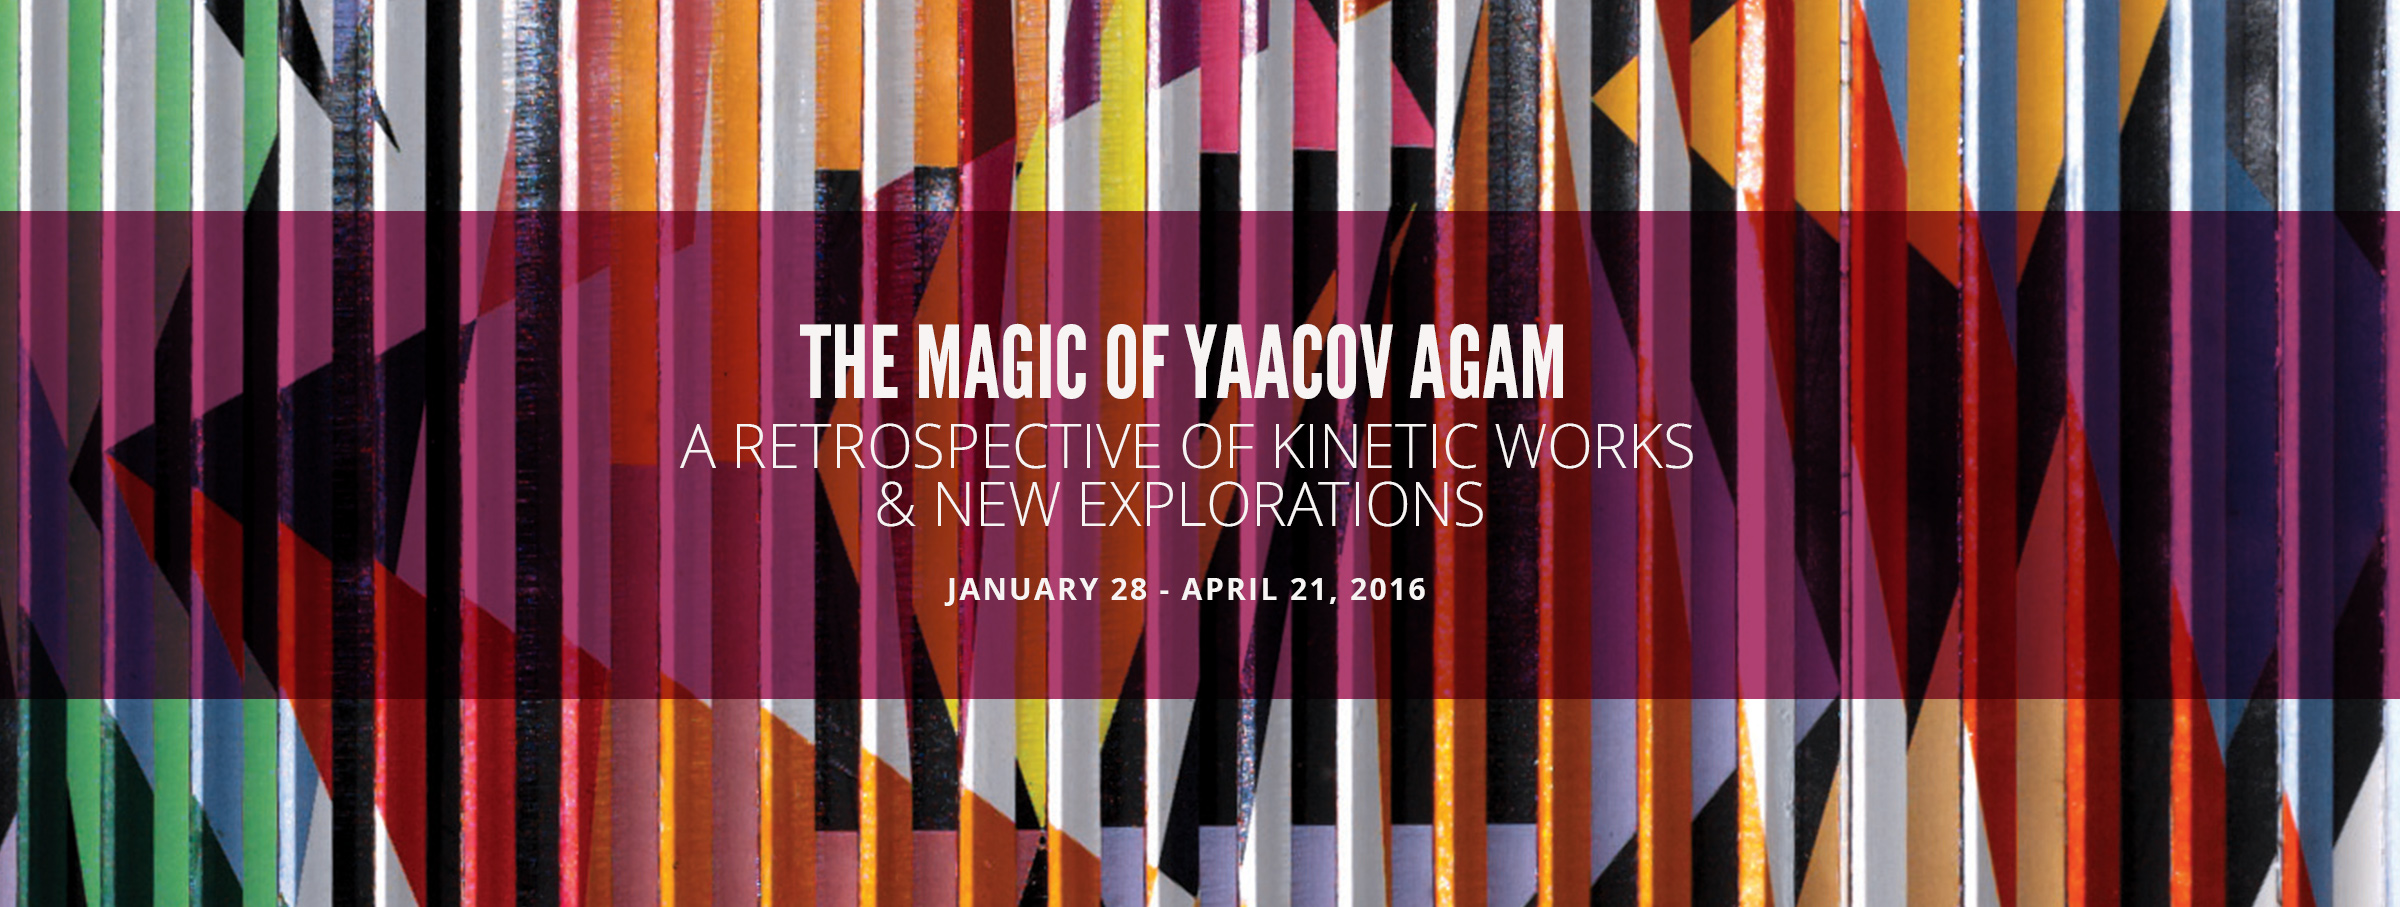 Free Things to do in Dallas - Yaacov Agam Exhibit at The Museum of Geoemtric and MADI Art